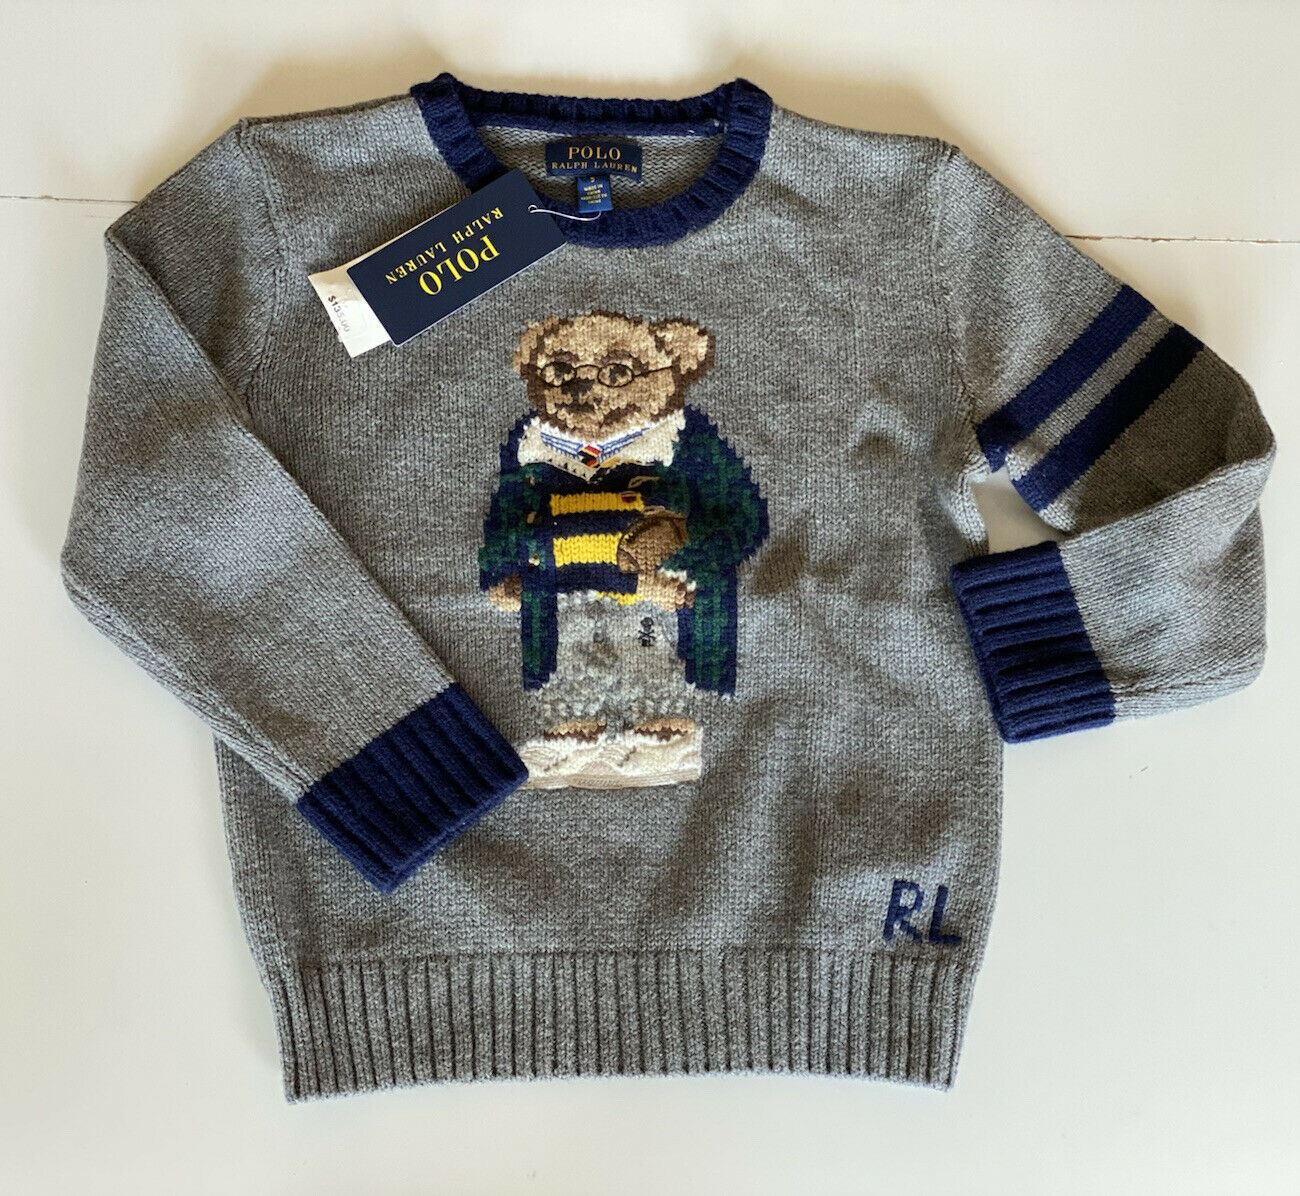 NWT $135 Polo Ralph Lauren Boys Bear Gray Cotton/Wool Sweater Size 6